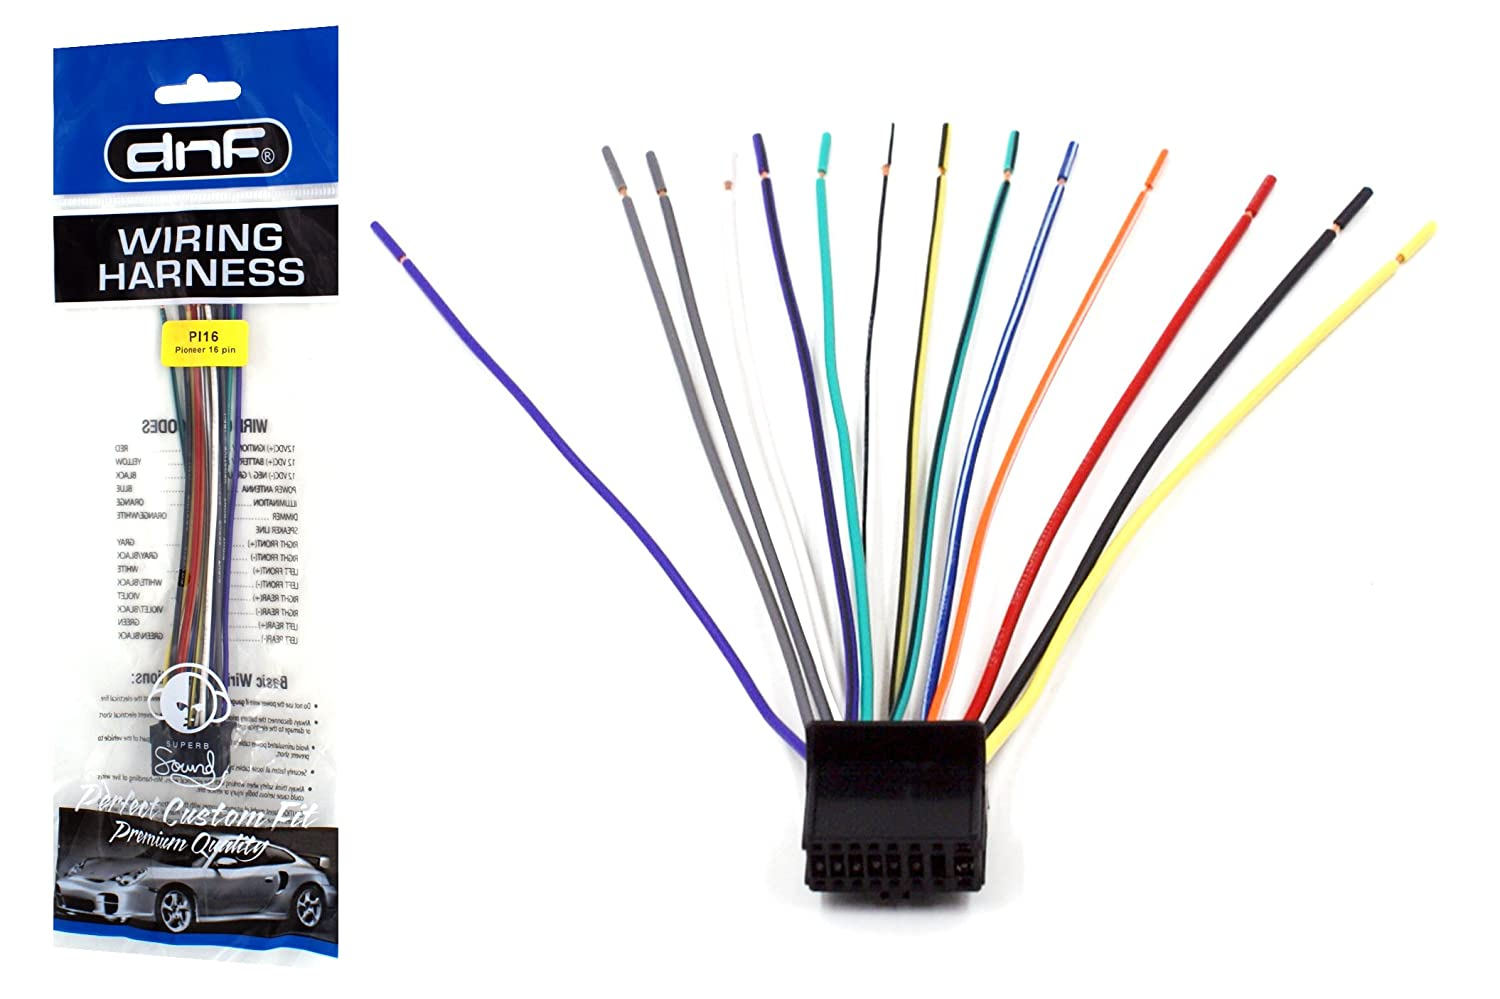 71A5xHv4deL._SL1500_ amazon com dnf pioneer wiring harness 0307 deh p4000ub deh p400ub pioneer deh p4800mp wiring diagram at crackthecode.co